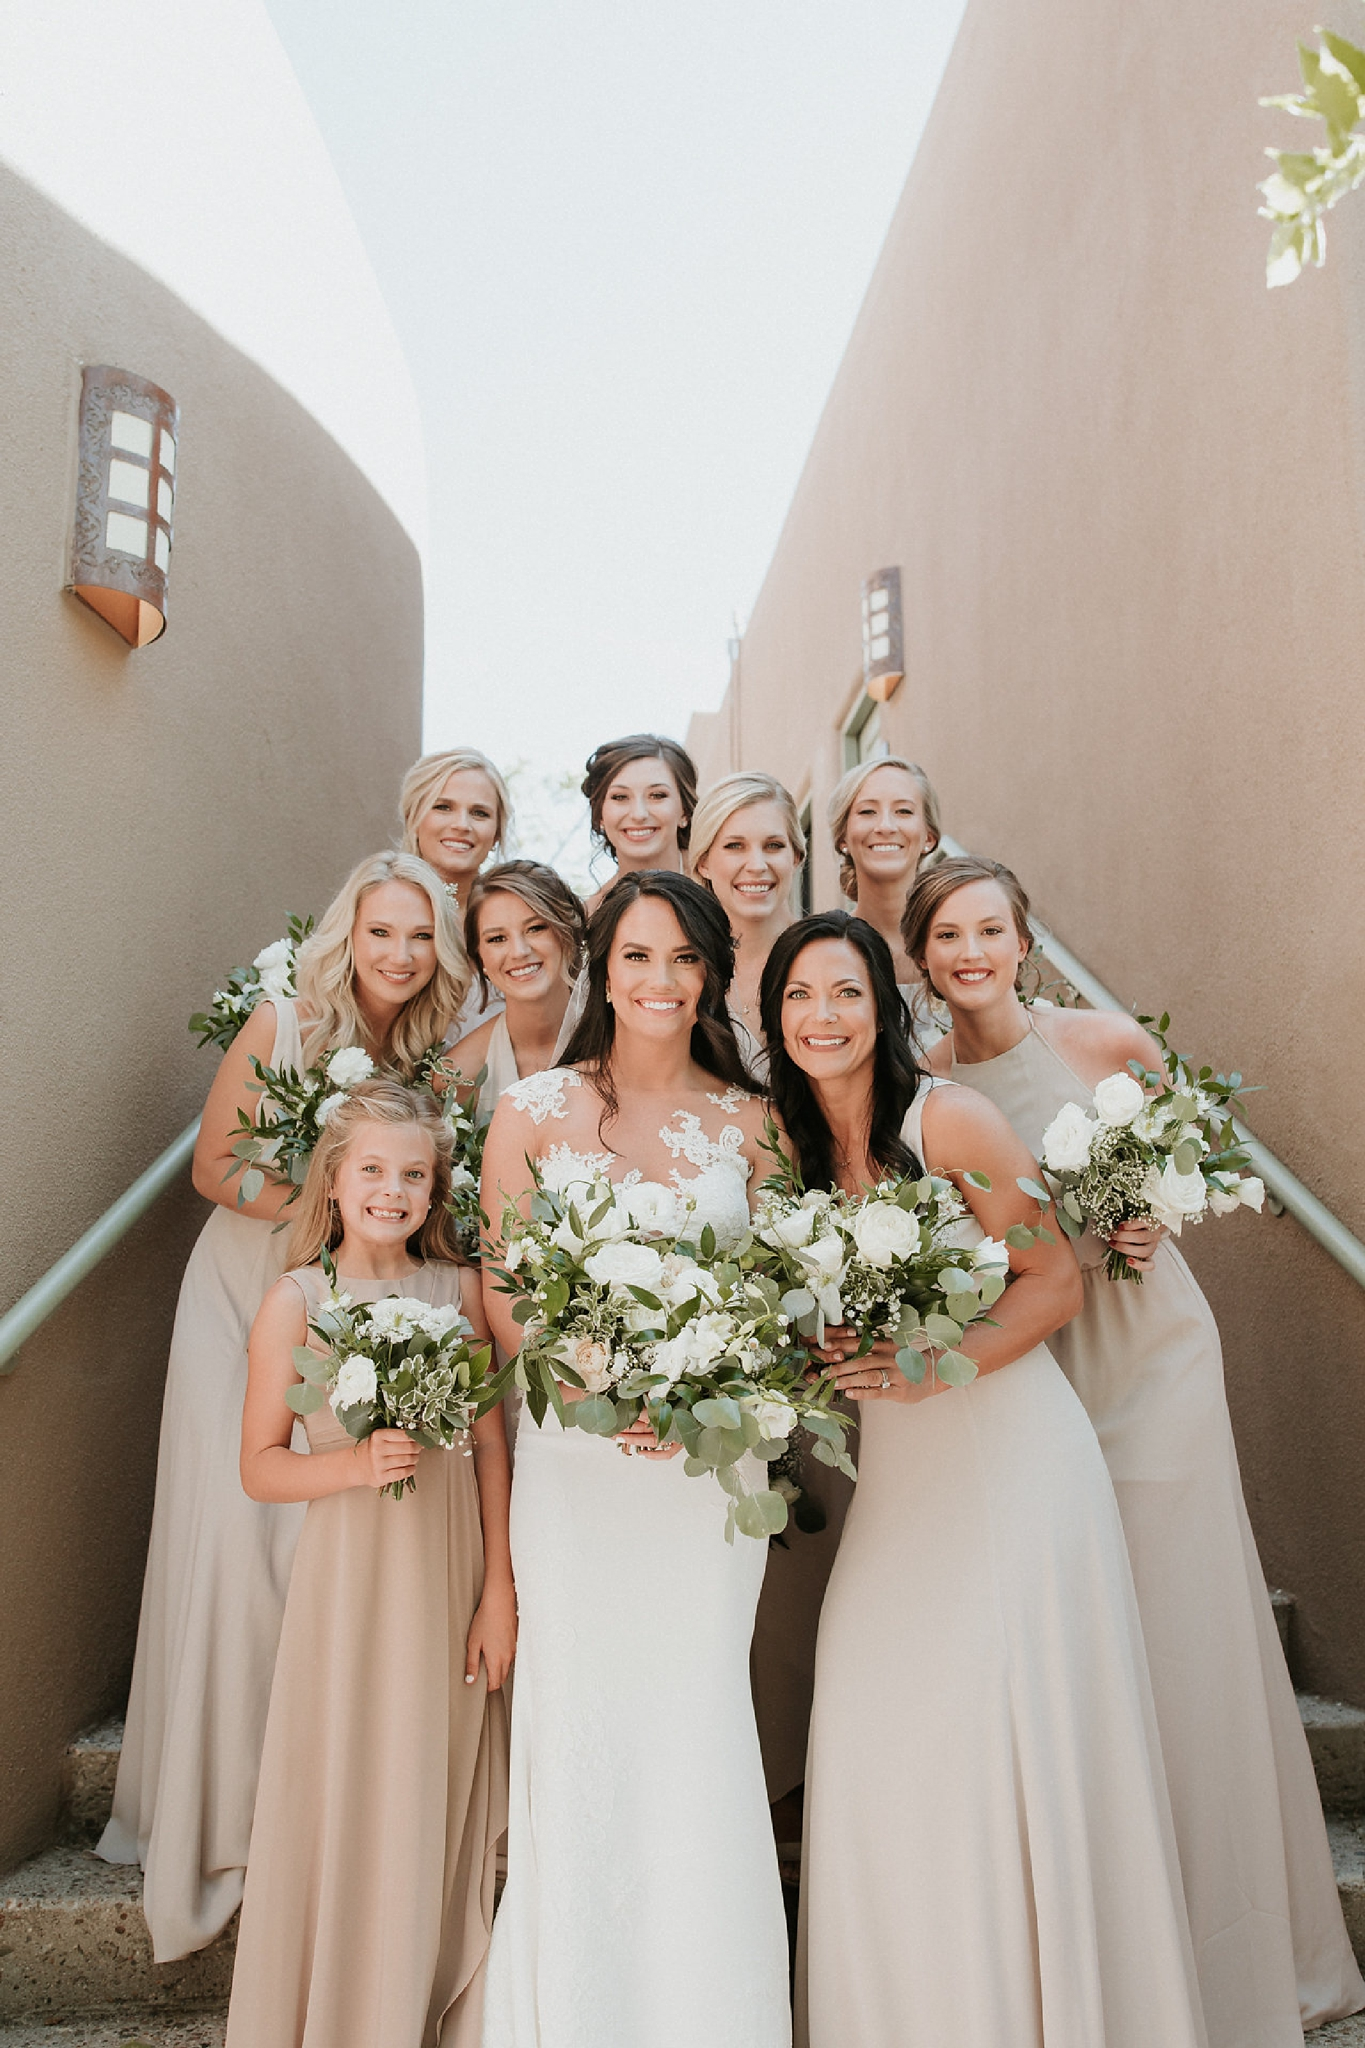 Alicia+lucia+photography+-+albuquerque+wedding+photographer+-+santa+fe+wedding+photography+-+new+mexico+wedding+photographer+-+new+mexico+wedding+-+new+mexico+wedding+-+colorado+wedding+-+bridesmaids+-+bridesmaid+style_0032.jpg